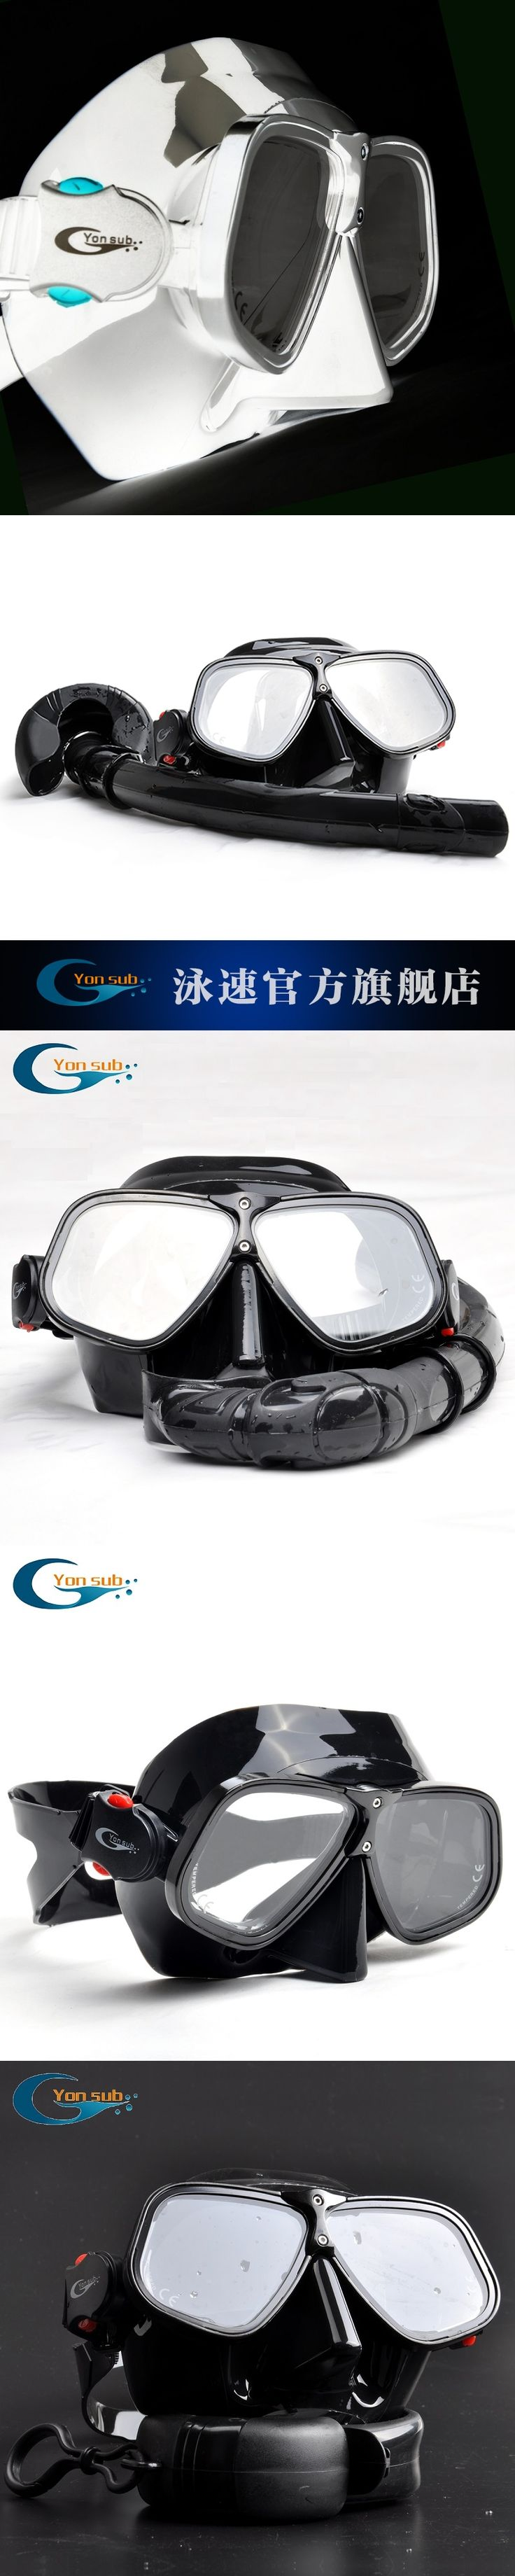 Alloy Silicone goggles free diving mask snorkeling Sambo professional scuba diving equipment dive